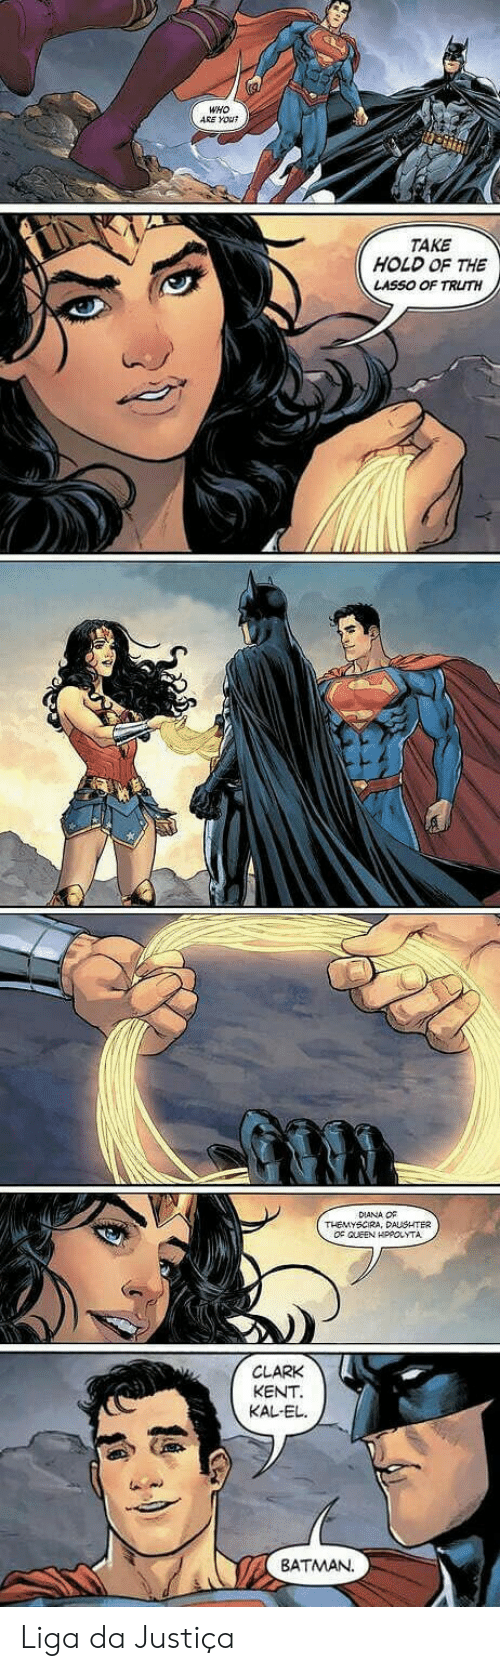 Truthful: WHO  ARE YOUR  TAKE  HOLD OF THE  LASSO OF TRUTH  ●複  DIANA OF  OF CUEEN HPPOLYTA  CLARK  KENT  KAL-EL  儿  BATMAN. Liga da Justiça